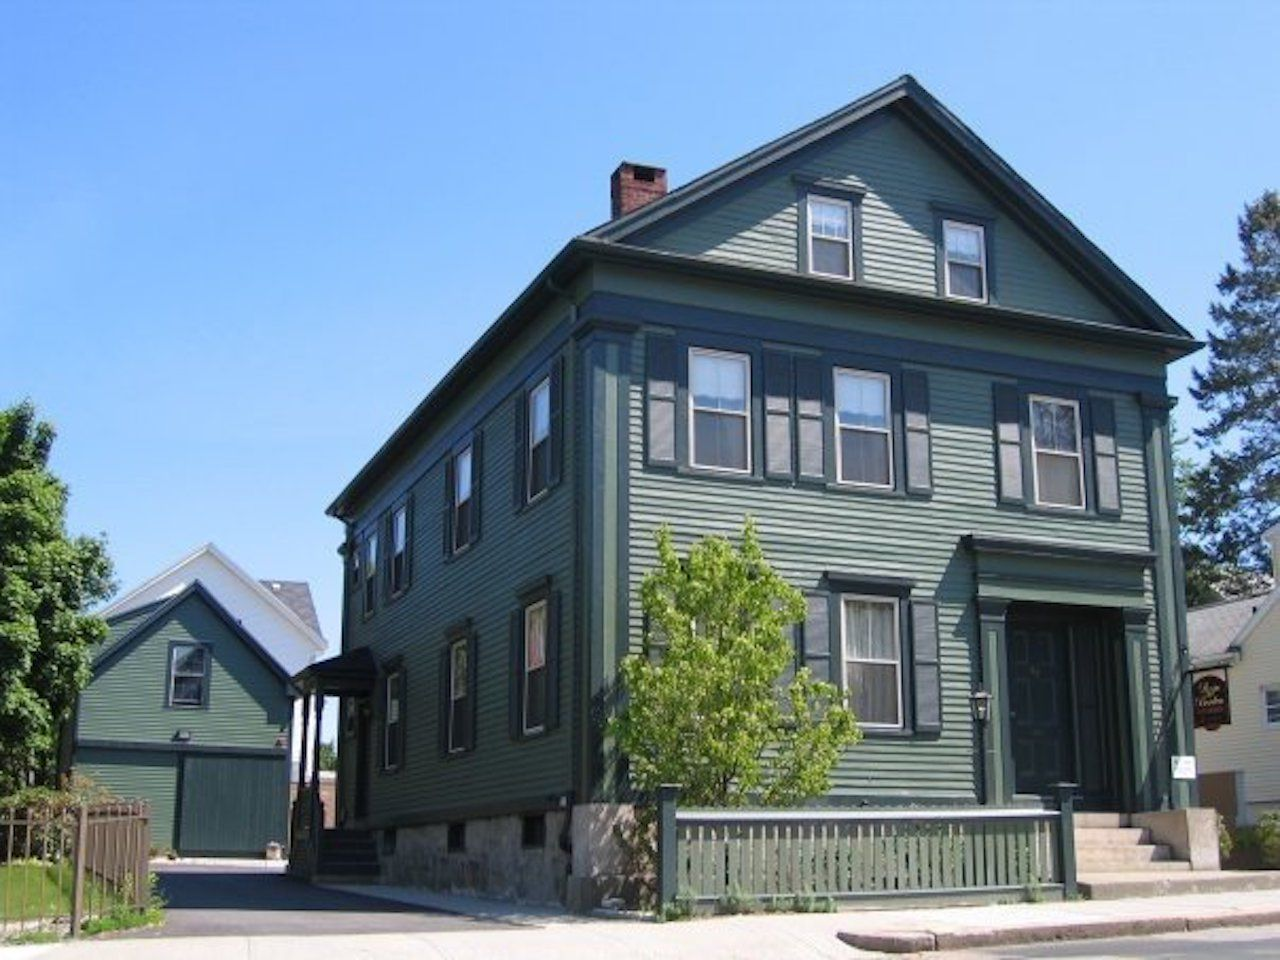 Lizzie Borden Bed and Breakfast/Museum